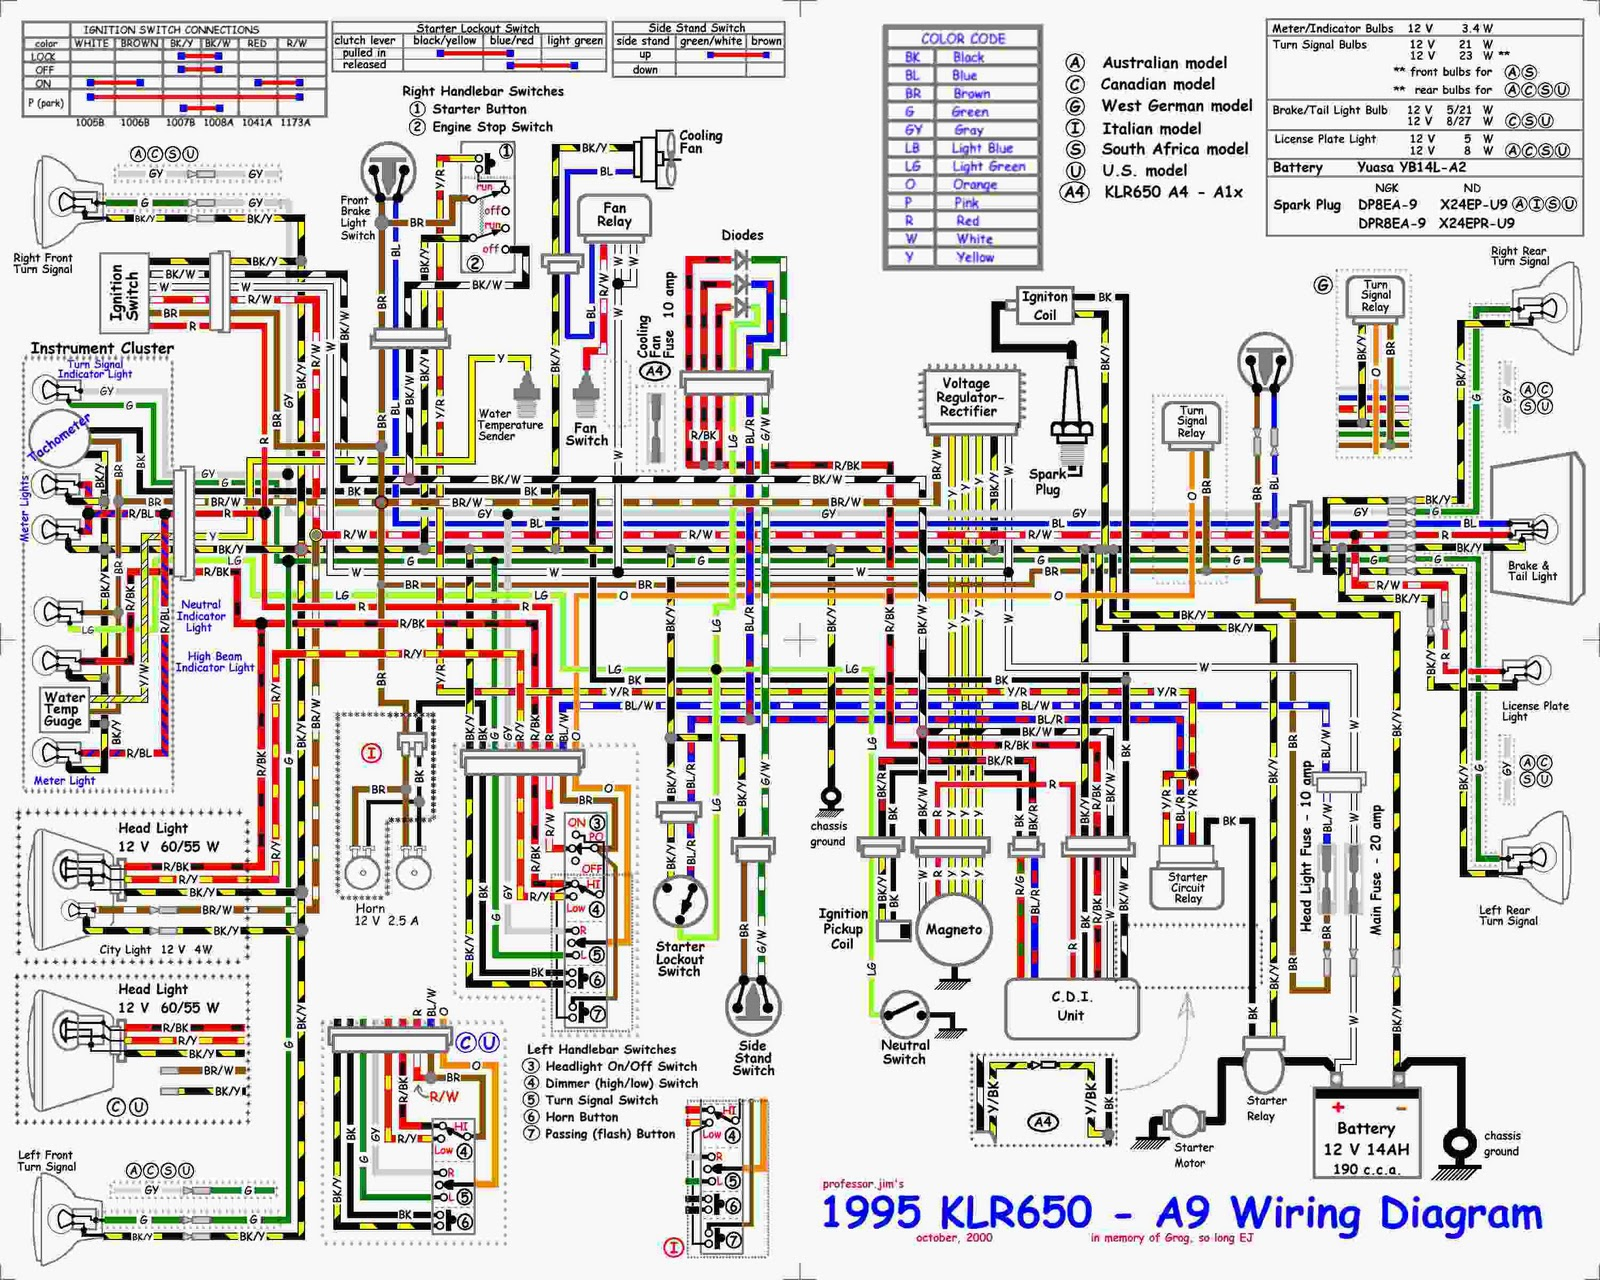 Wiring Diagram For 87 Chevy Monte Carlo Will Be A 1995 Engine Schematic Trusted Diagrams Rh Hamze Co 1984 Window 1999